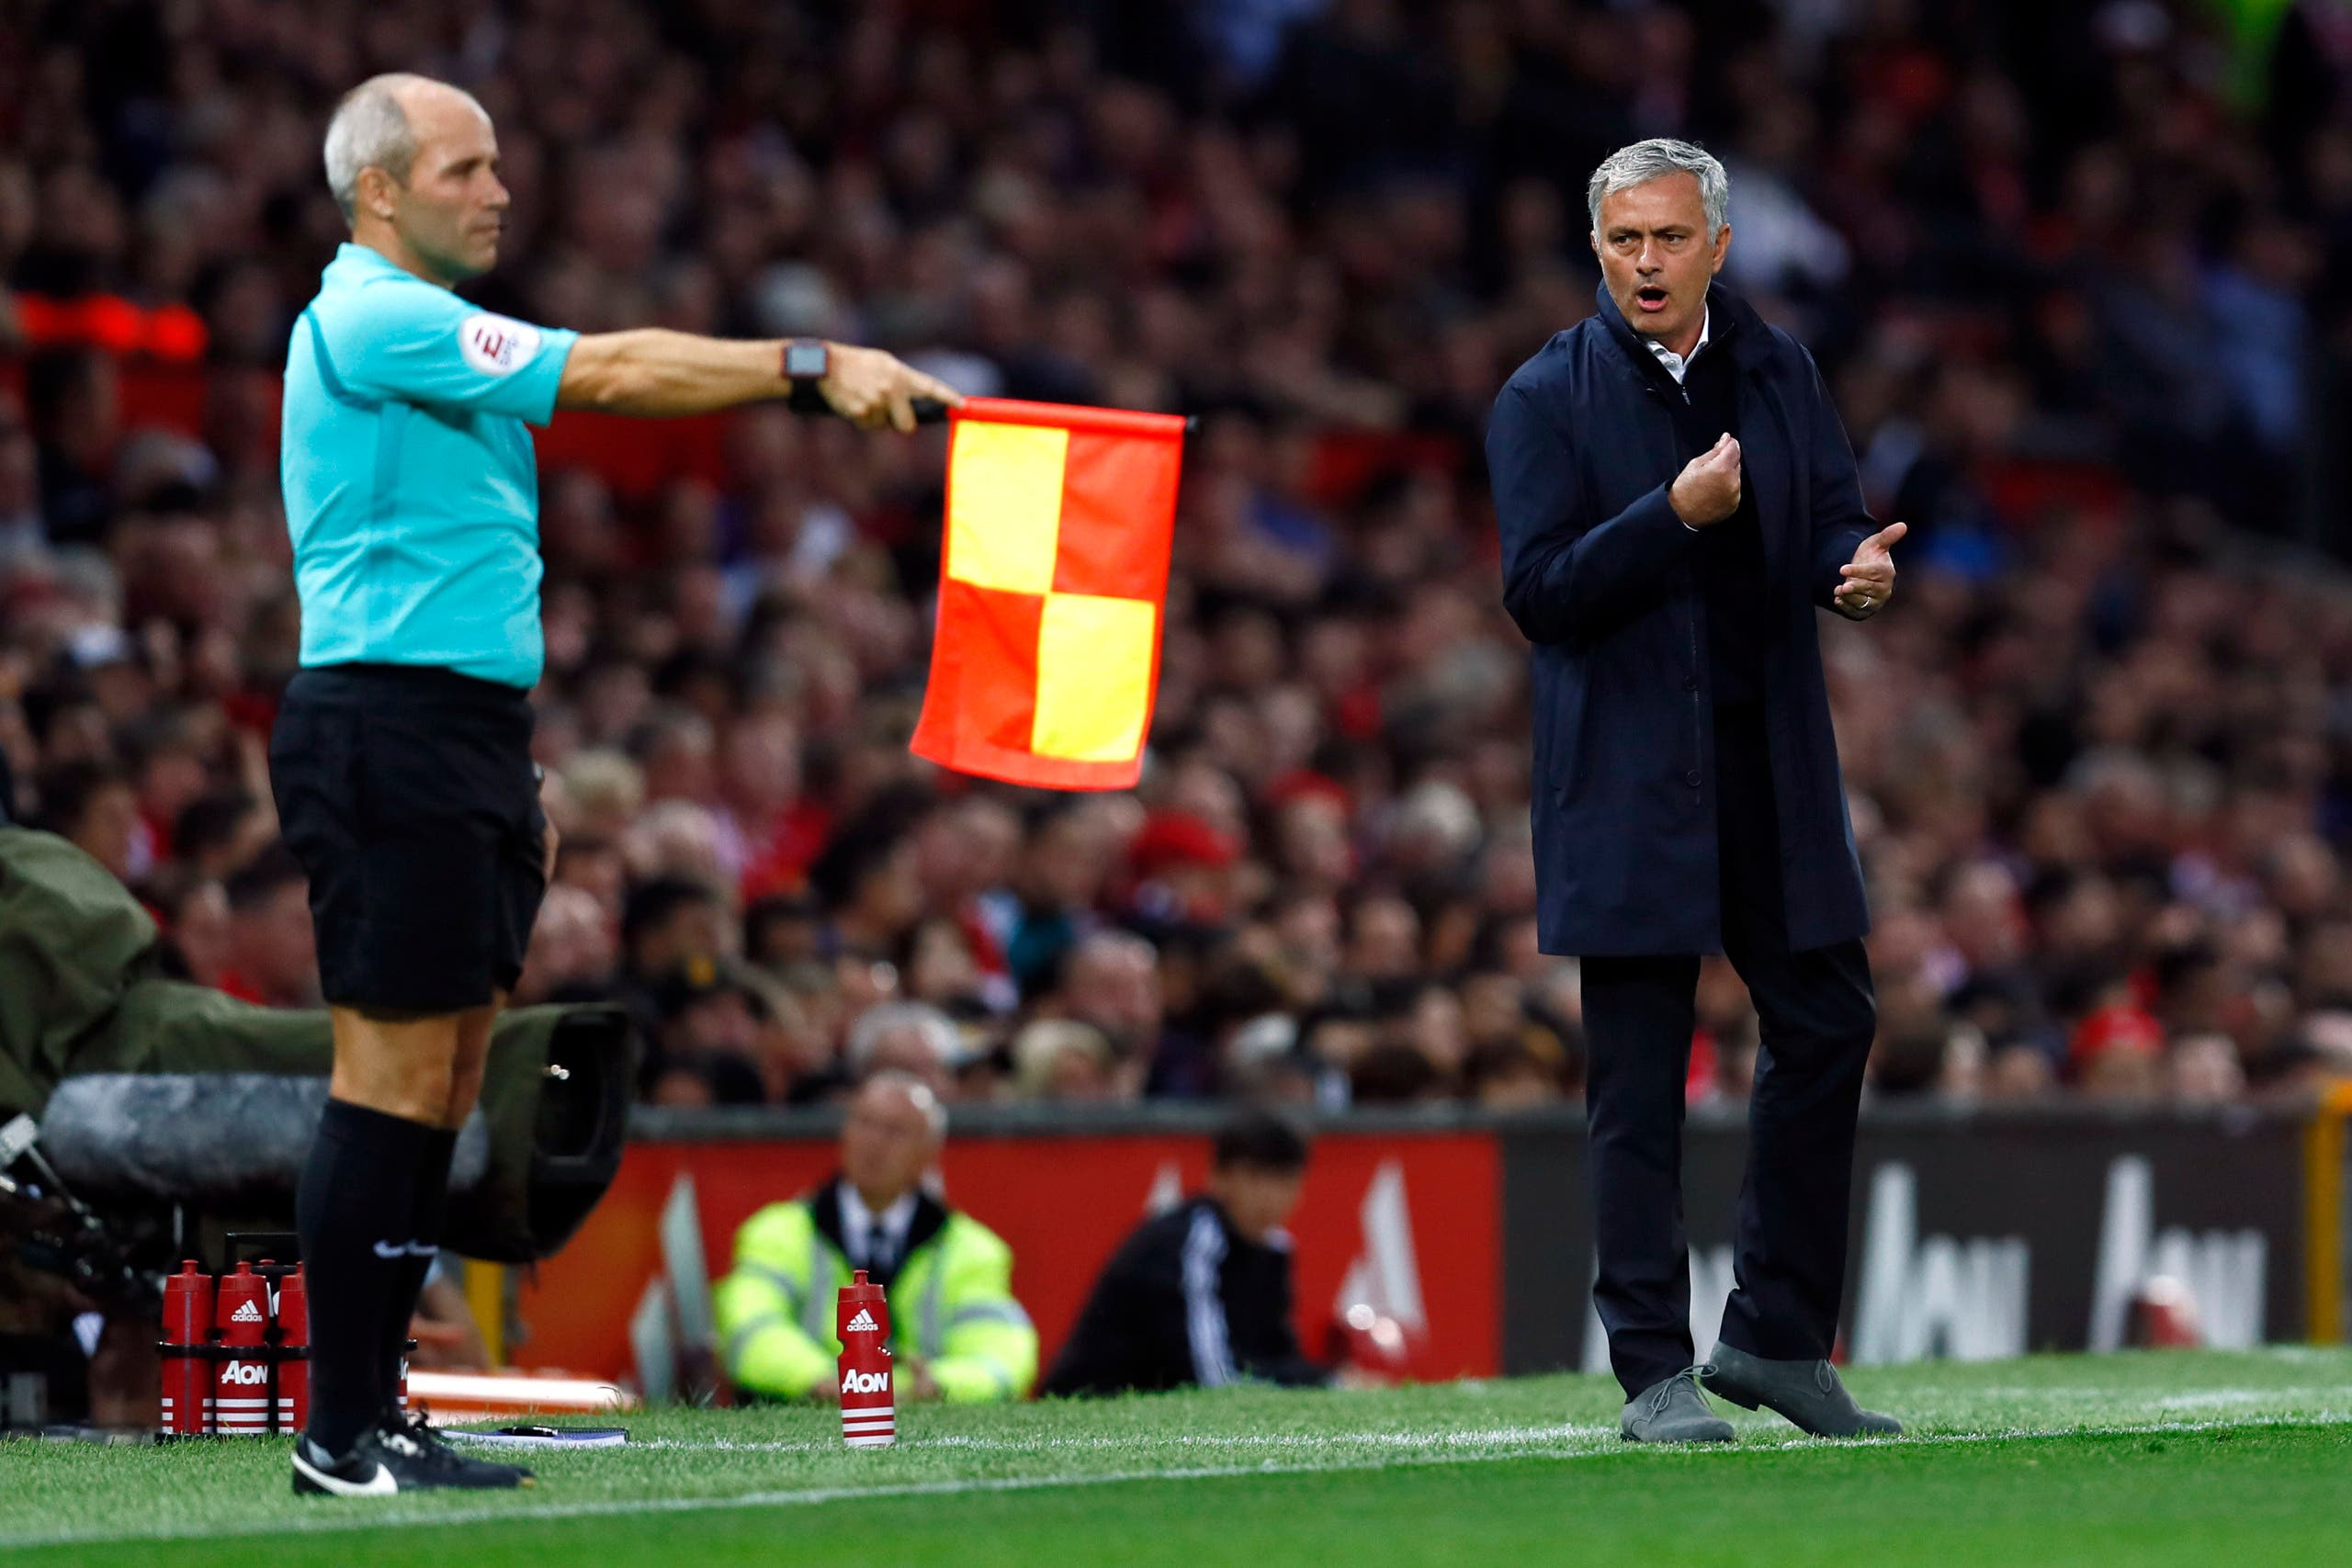 The linesman holds up his flag as Manchester United manager Jose Mourinho looks on. (Reuters)